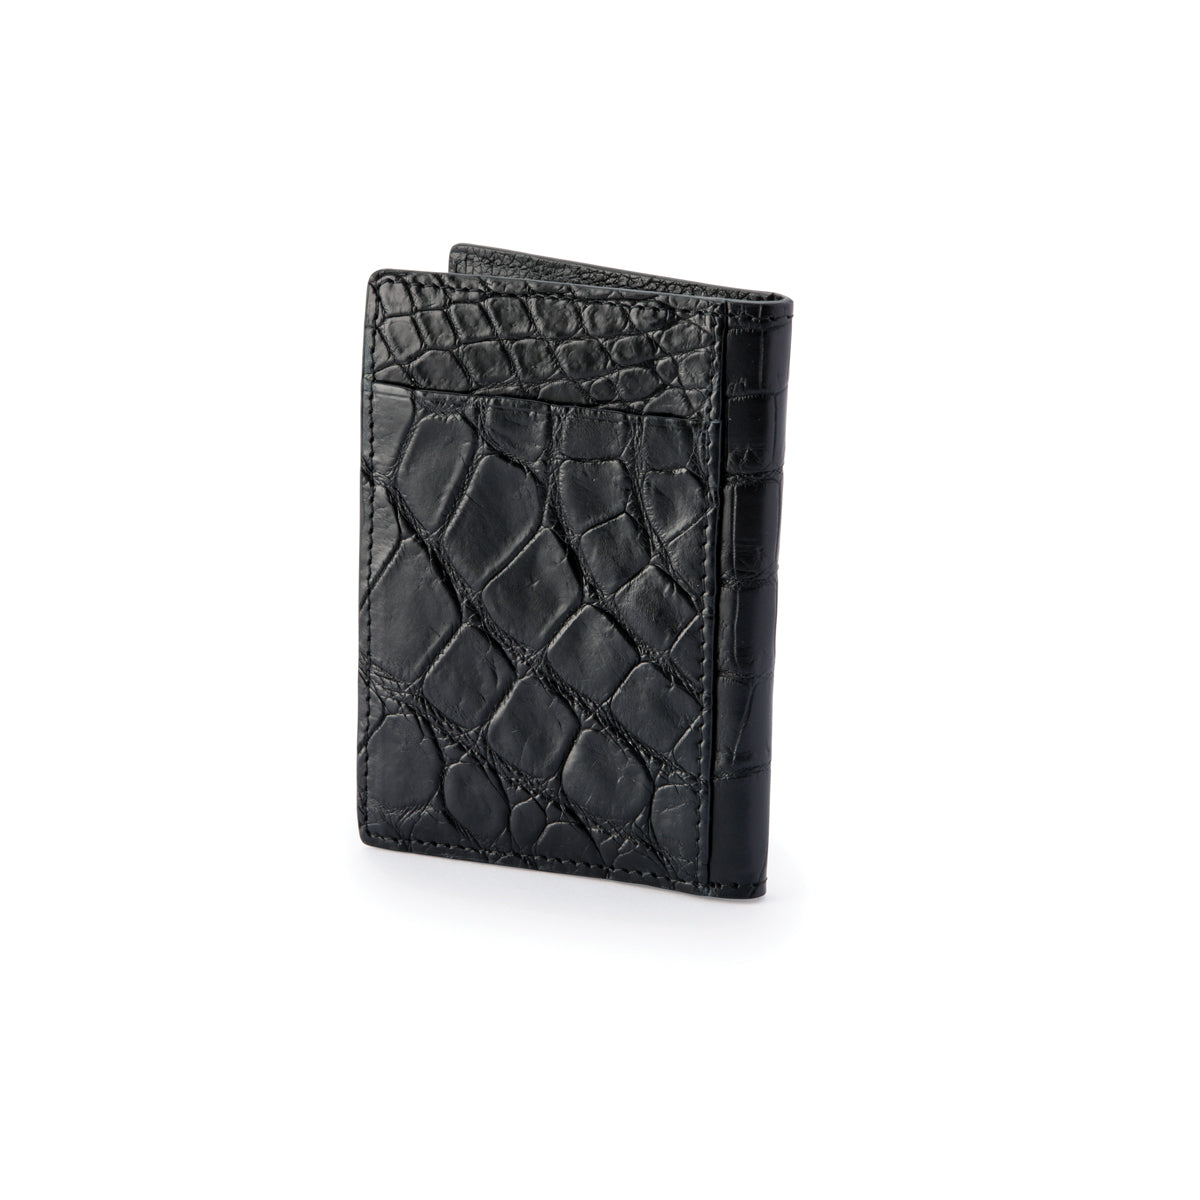 LIN8 luxury genuine exotic alligator and crocodile leather card case holder wallet for purse and handbag. Gift,present for him,her designer Melbourne Australia London